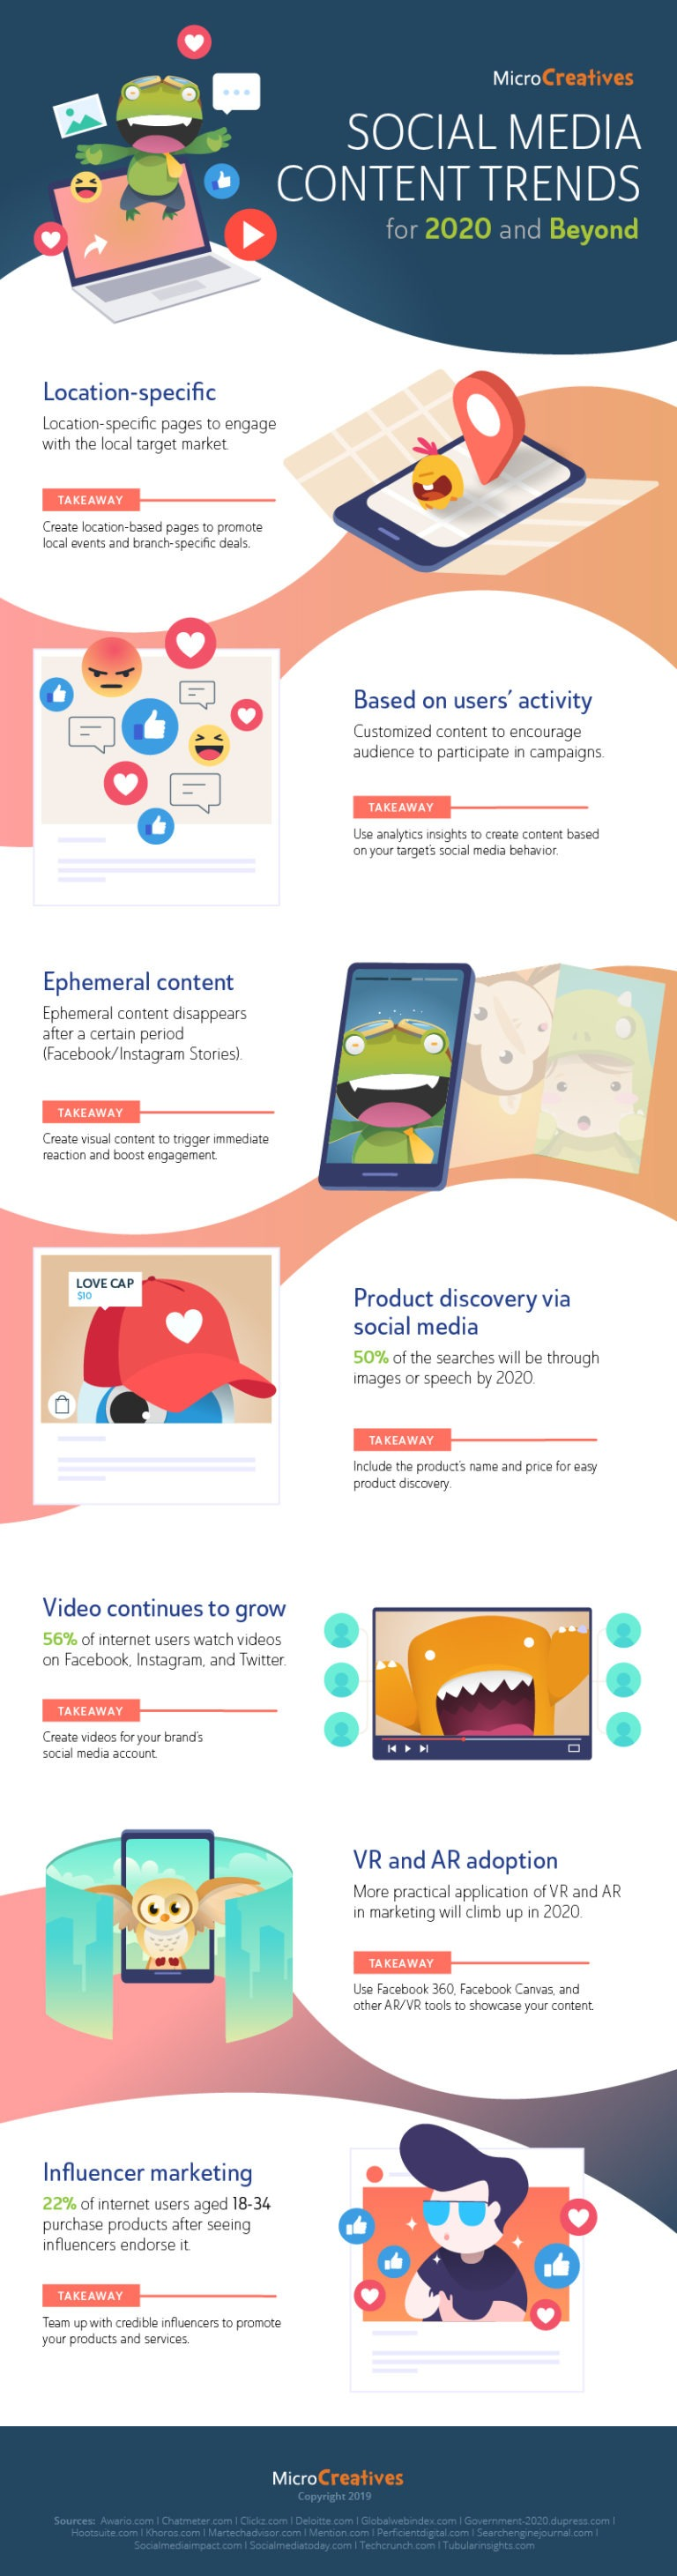 Social-Media-Content-Trends-for-2020